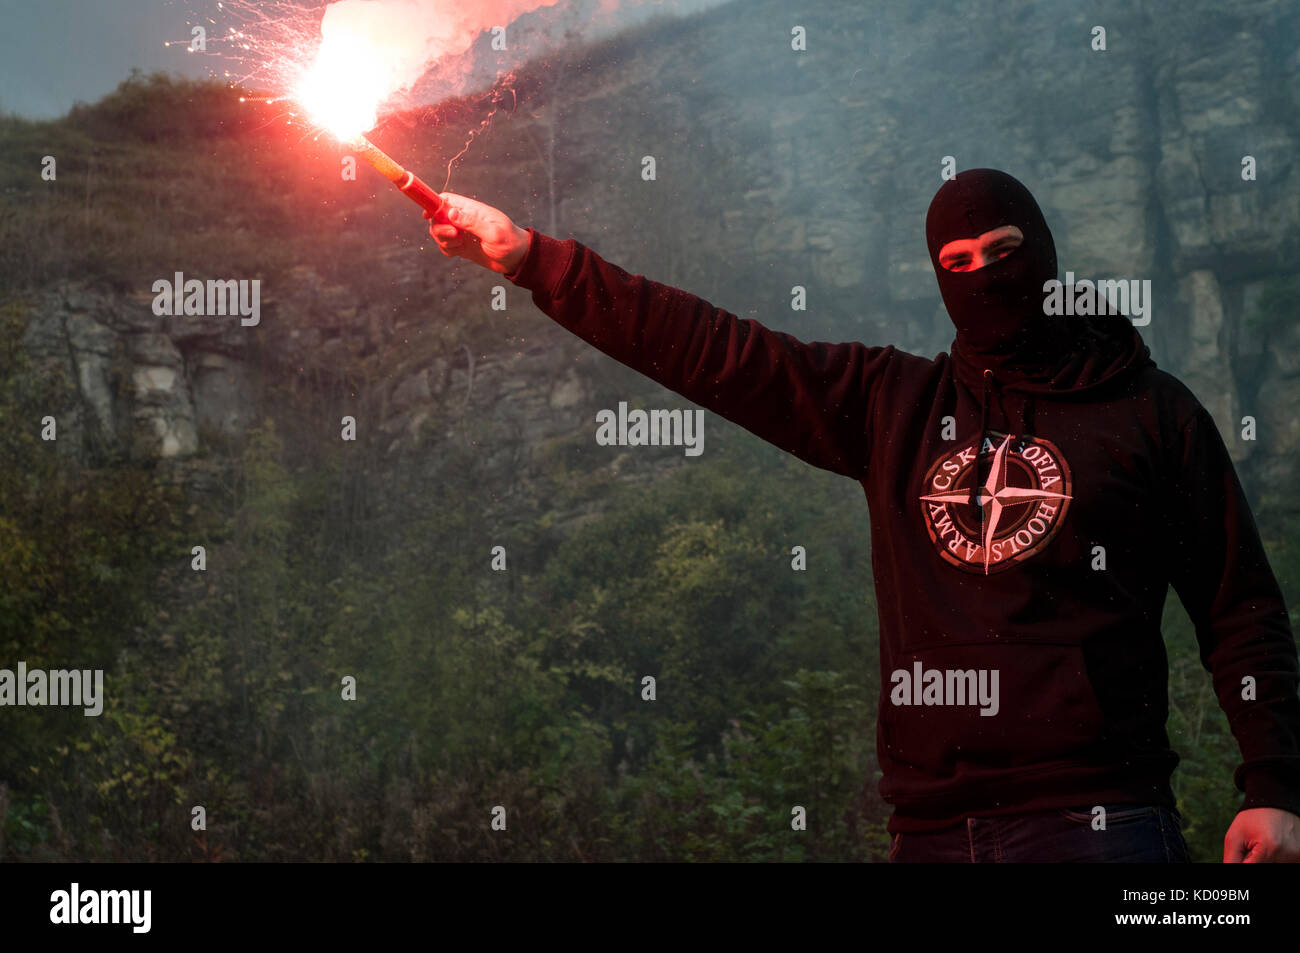 Eastern European Football Hooligan Stands with a lit flare gun. - Stock Image